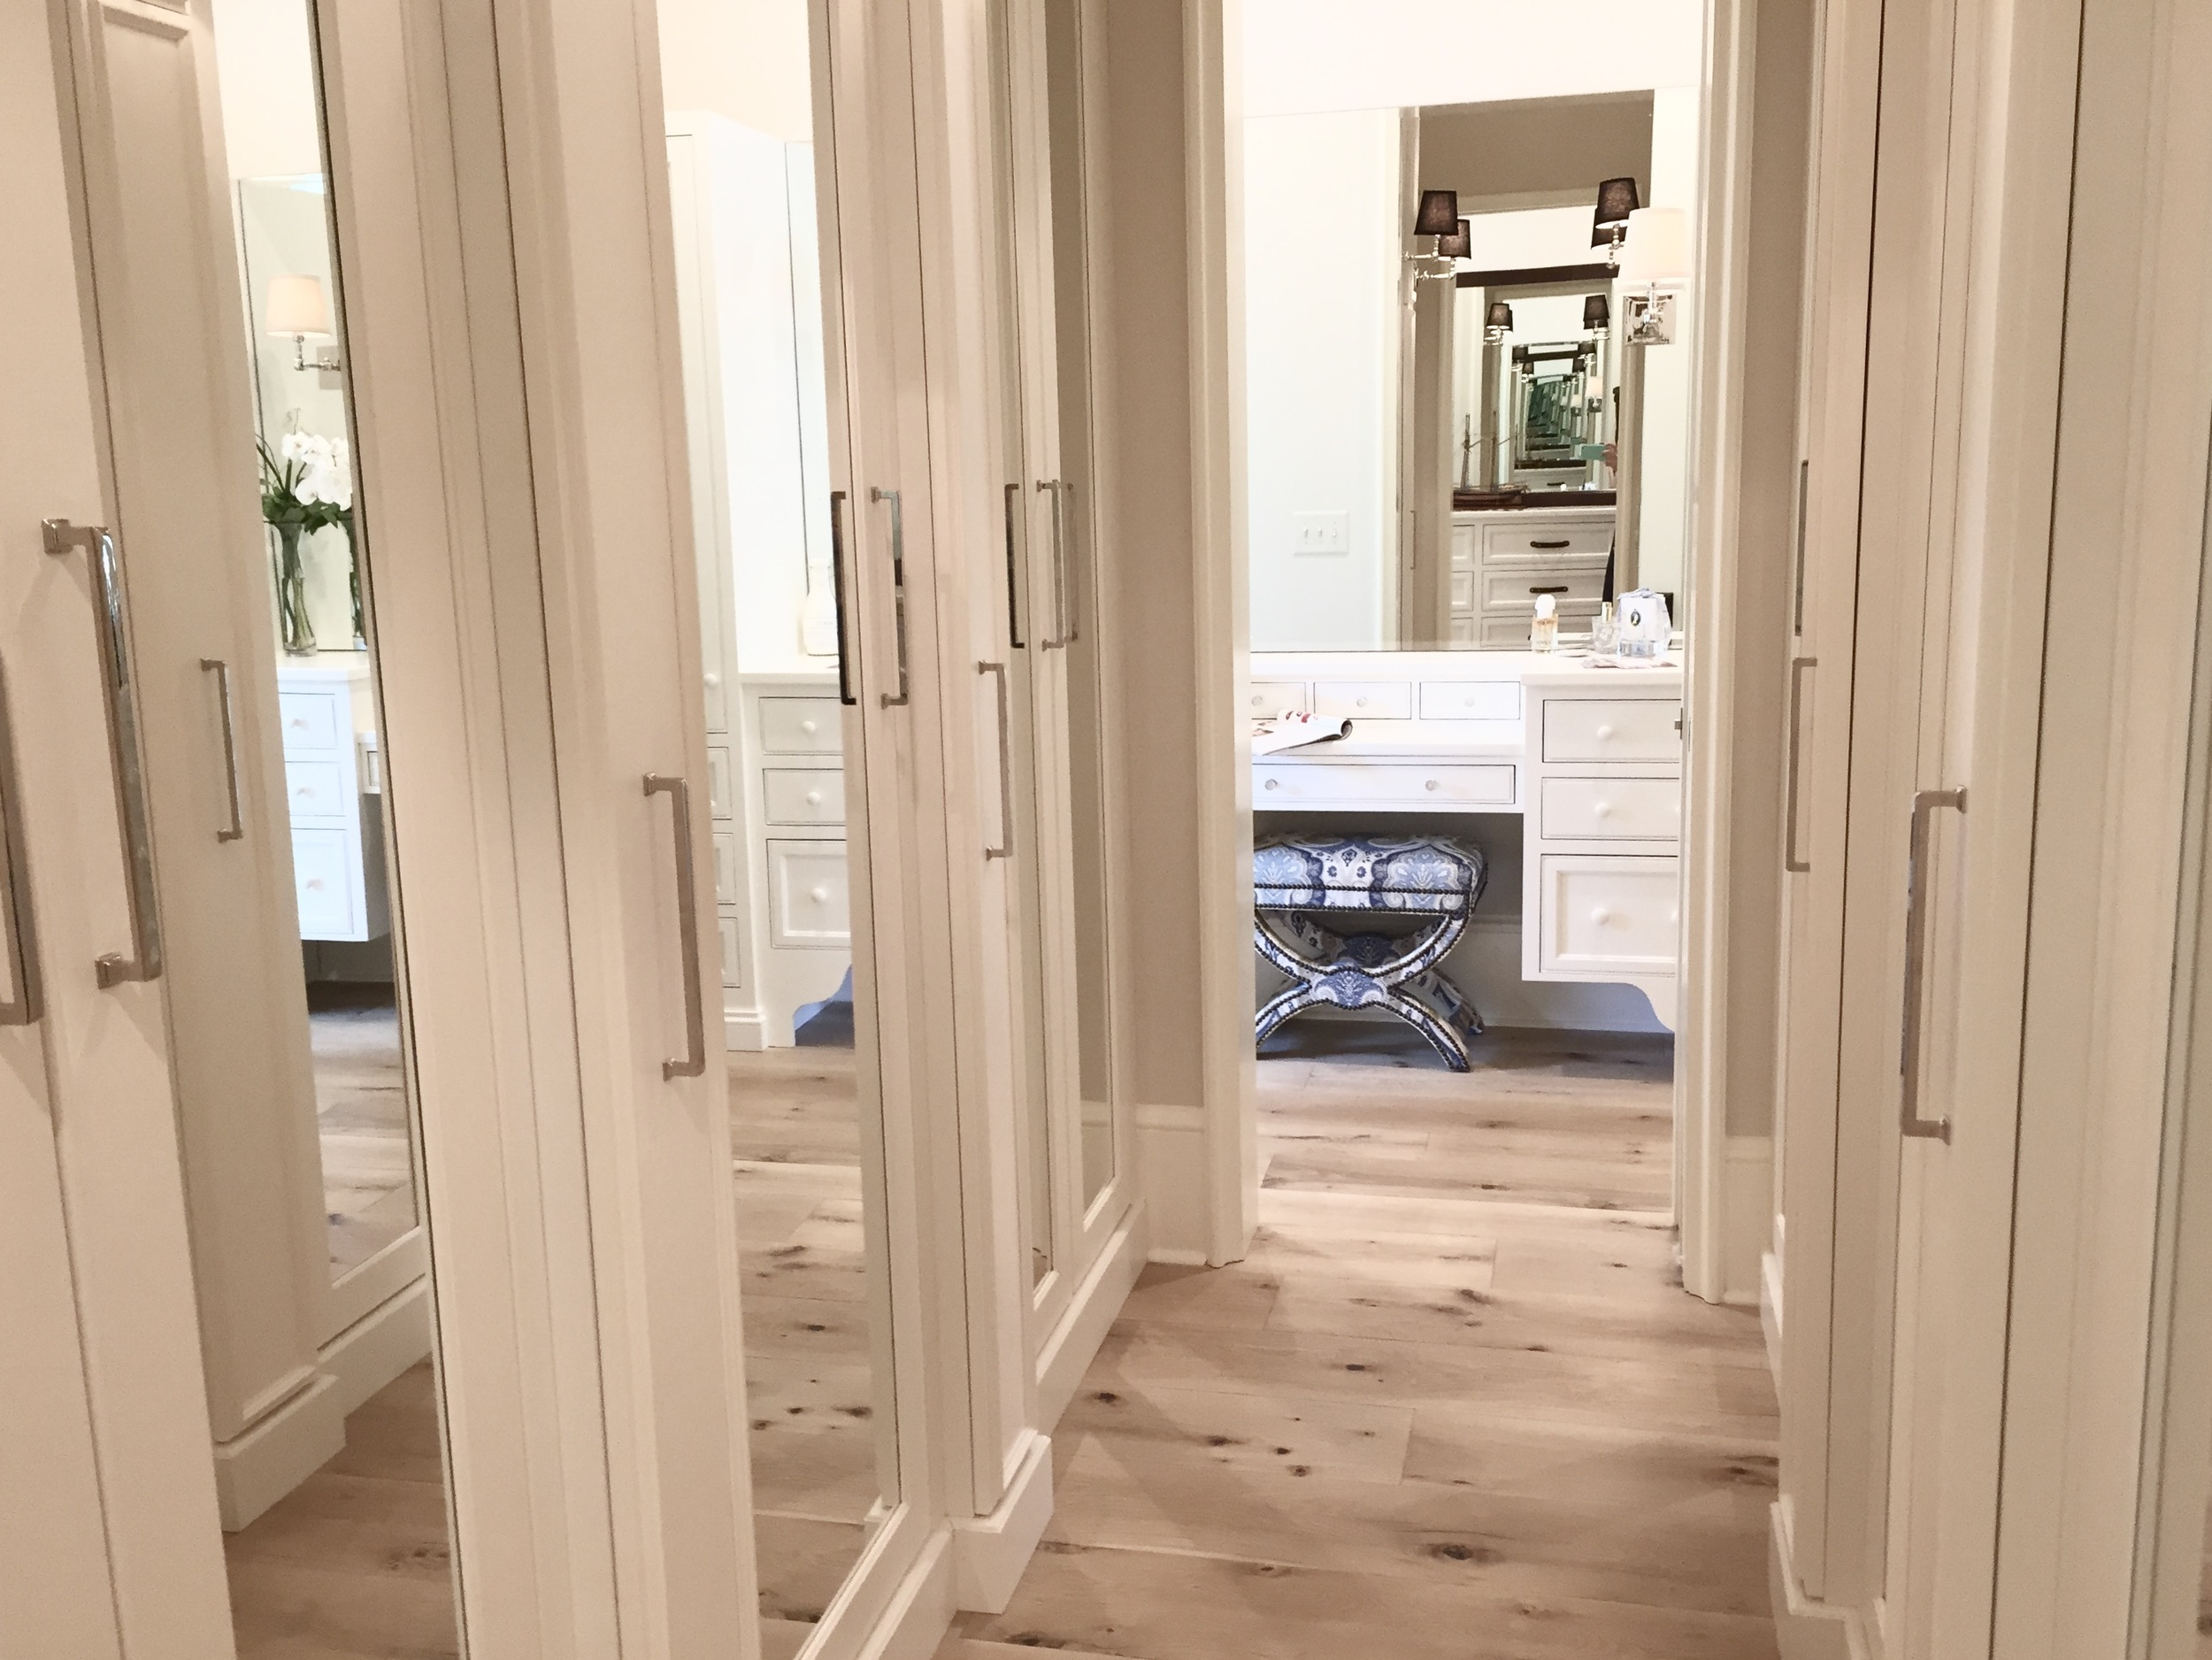 You could hear people oohing and ahhing over this closet from rooms away. Each pull revealed hidden closet space, and the mirrors accentuated the size and elegance of the room.